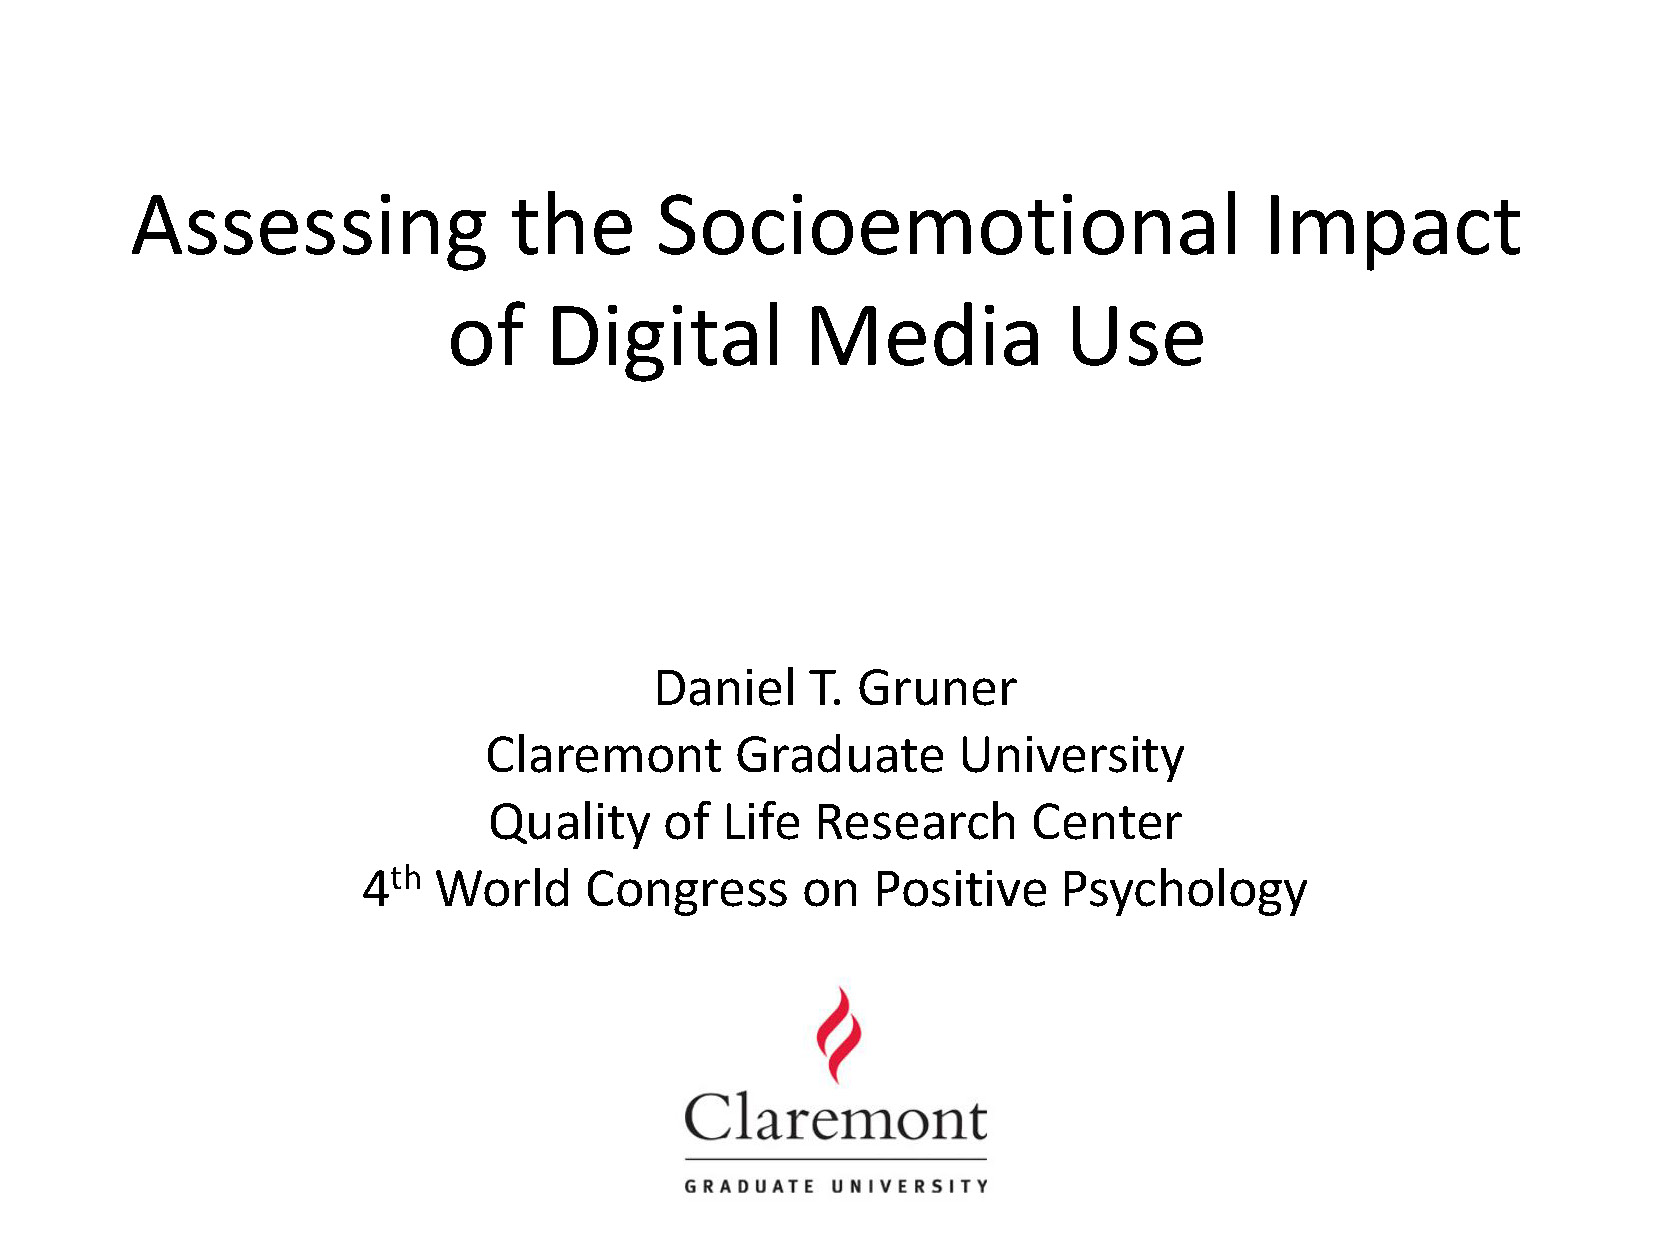 Pages from SY18.1  Assessing the Socioemotional Impact of Digital Media Use A Study of Experience_Gruner